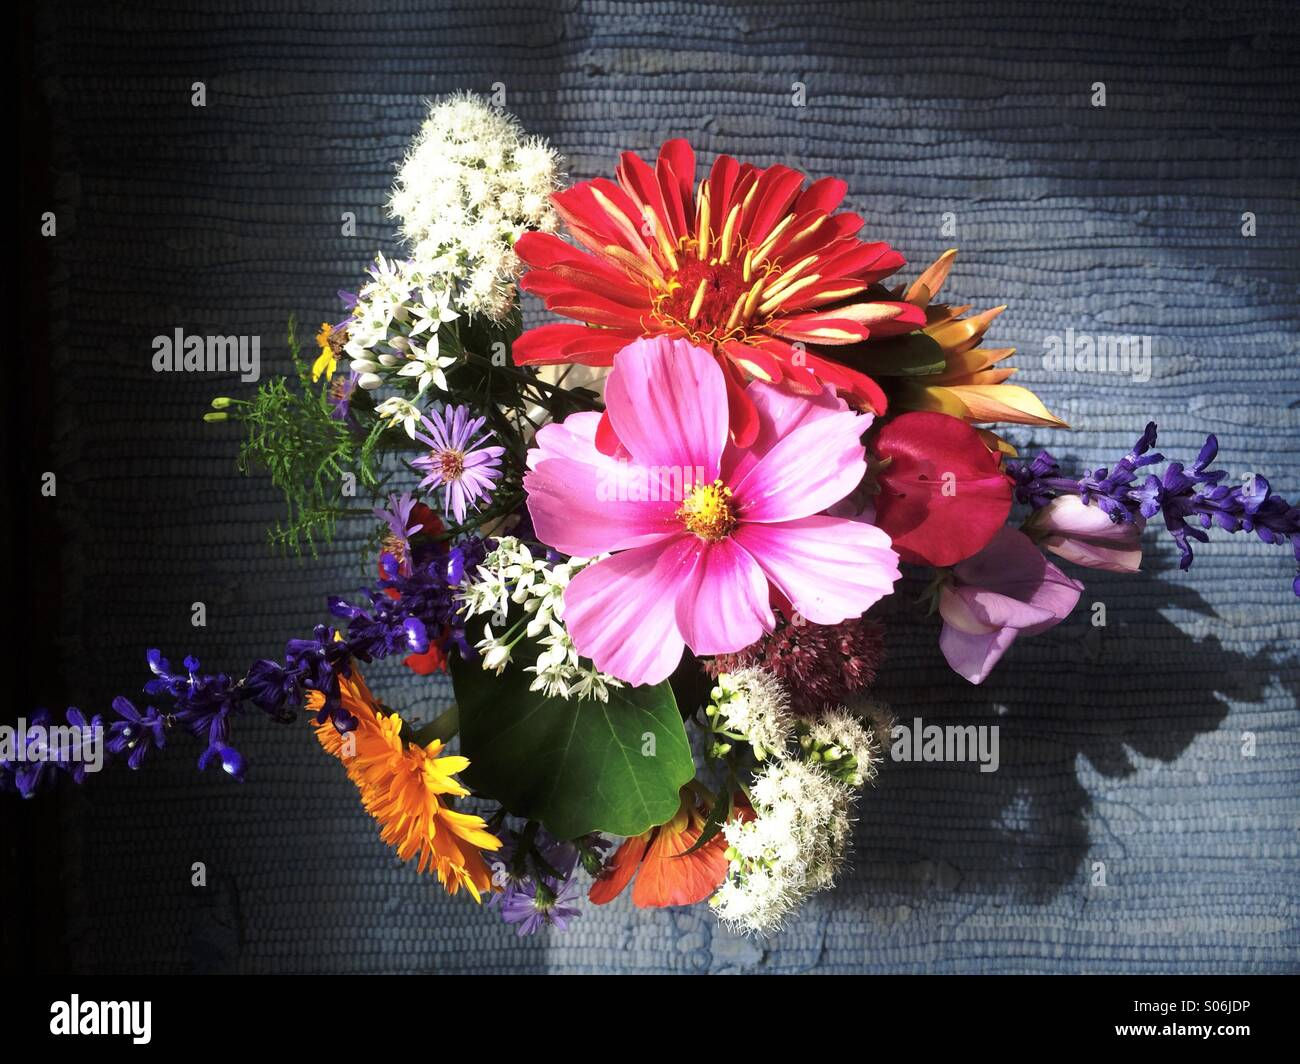 Late summer bouquet of cosmos, zinnia, dahlia, calendula, asters, marigolds, garlic chives, sweet pea, Victoria - Stock Image